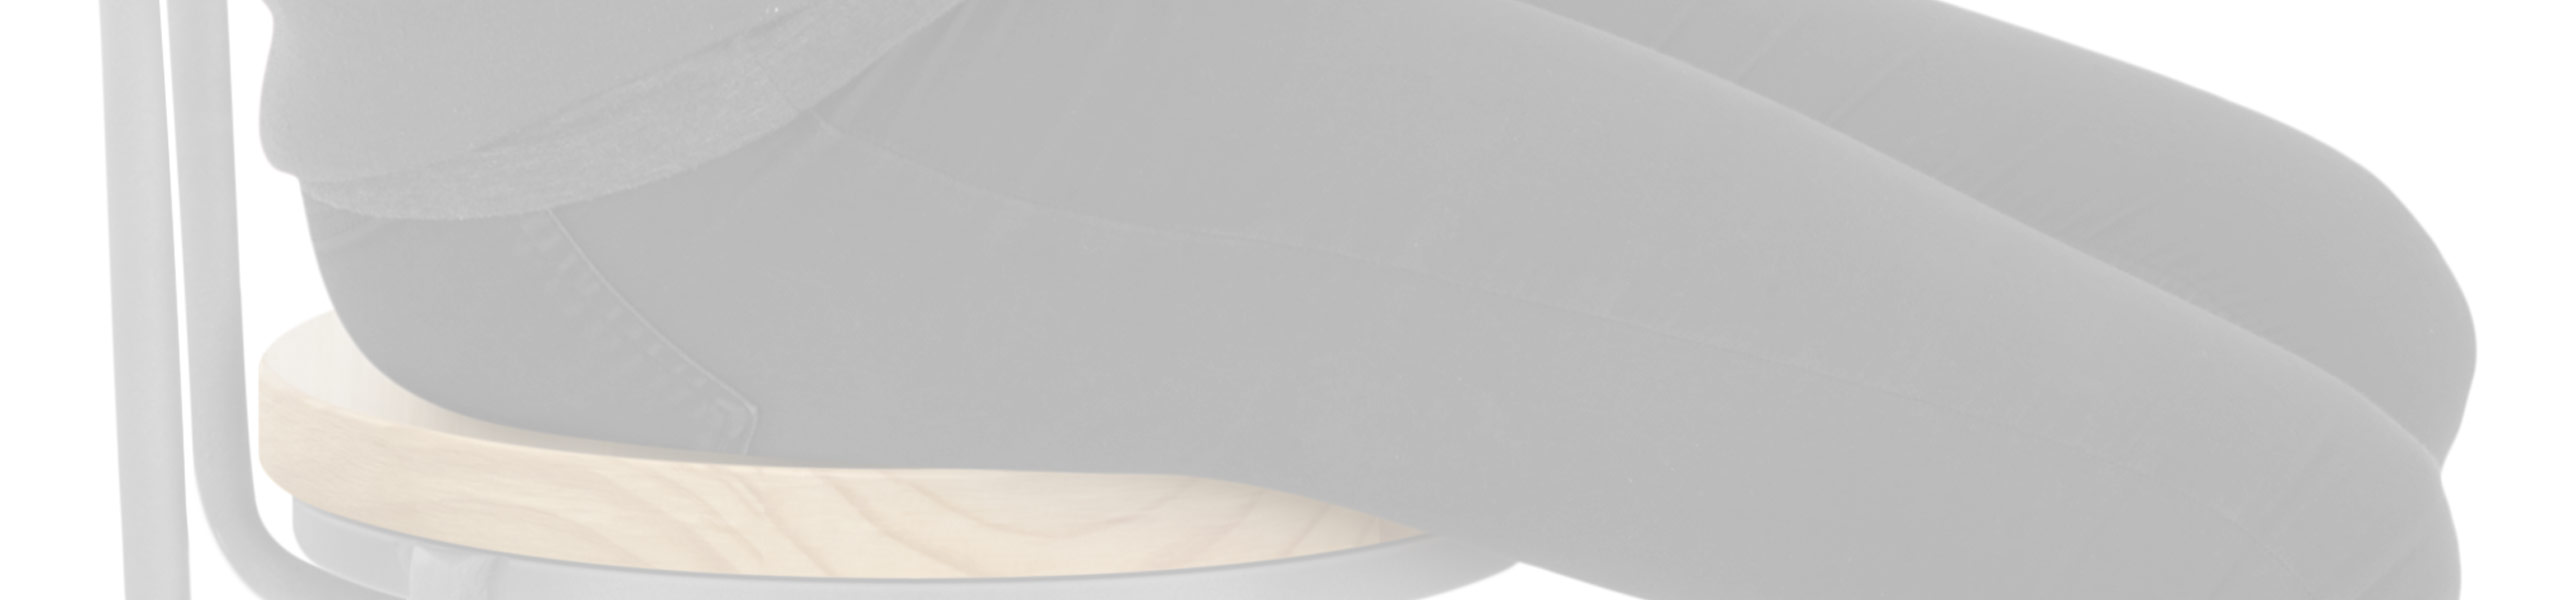 Lathe Wooden Stool Grey Review Banner